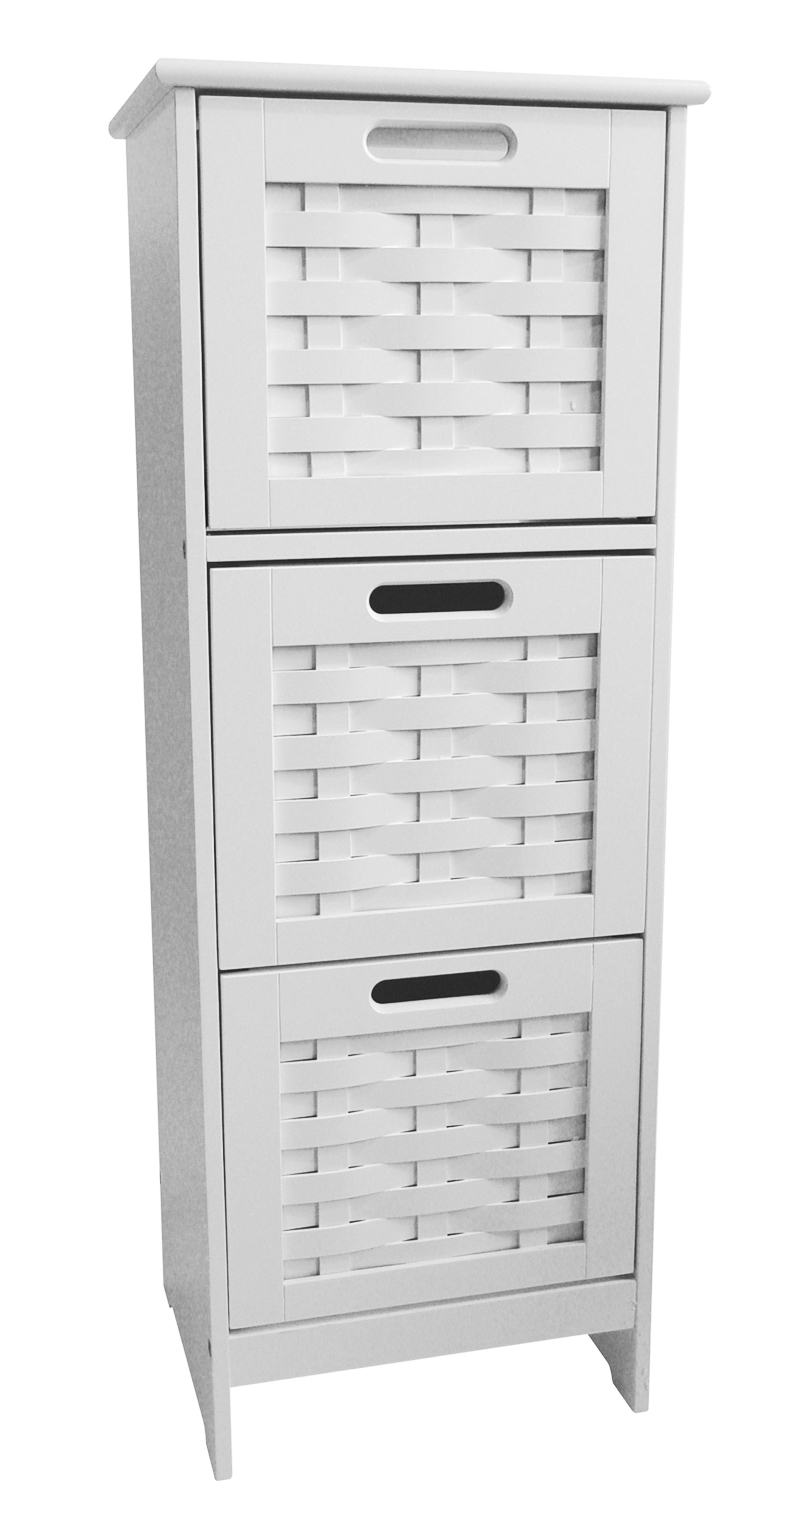 Details About 3 Drawer Slim Weave Storage Unit Bathroom Storage Cabinet White within proportions 787 X 1527